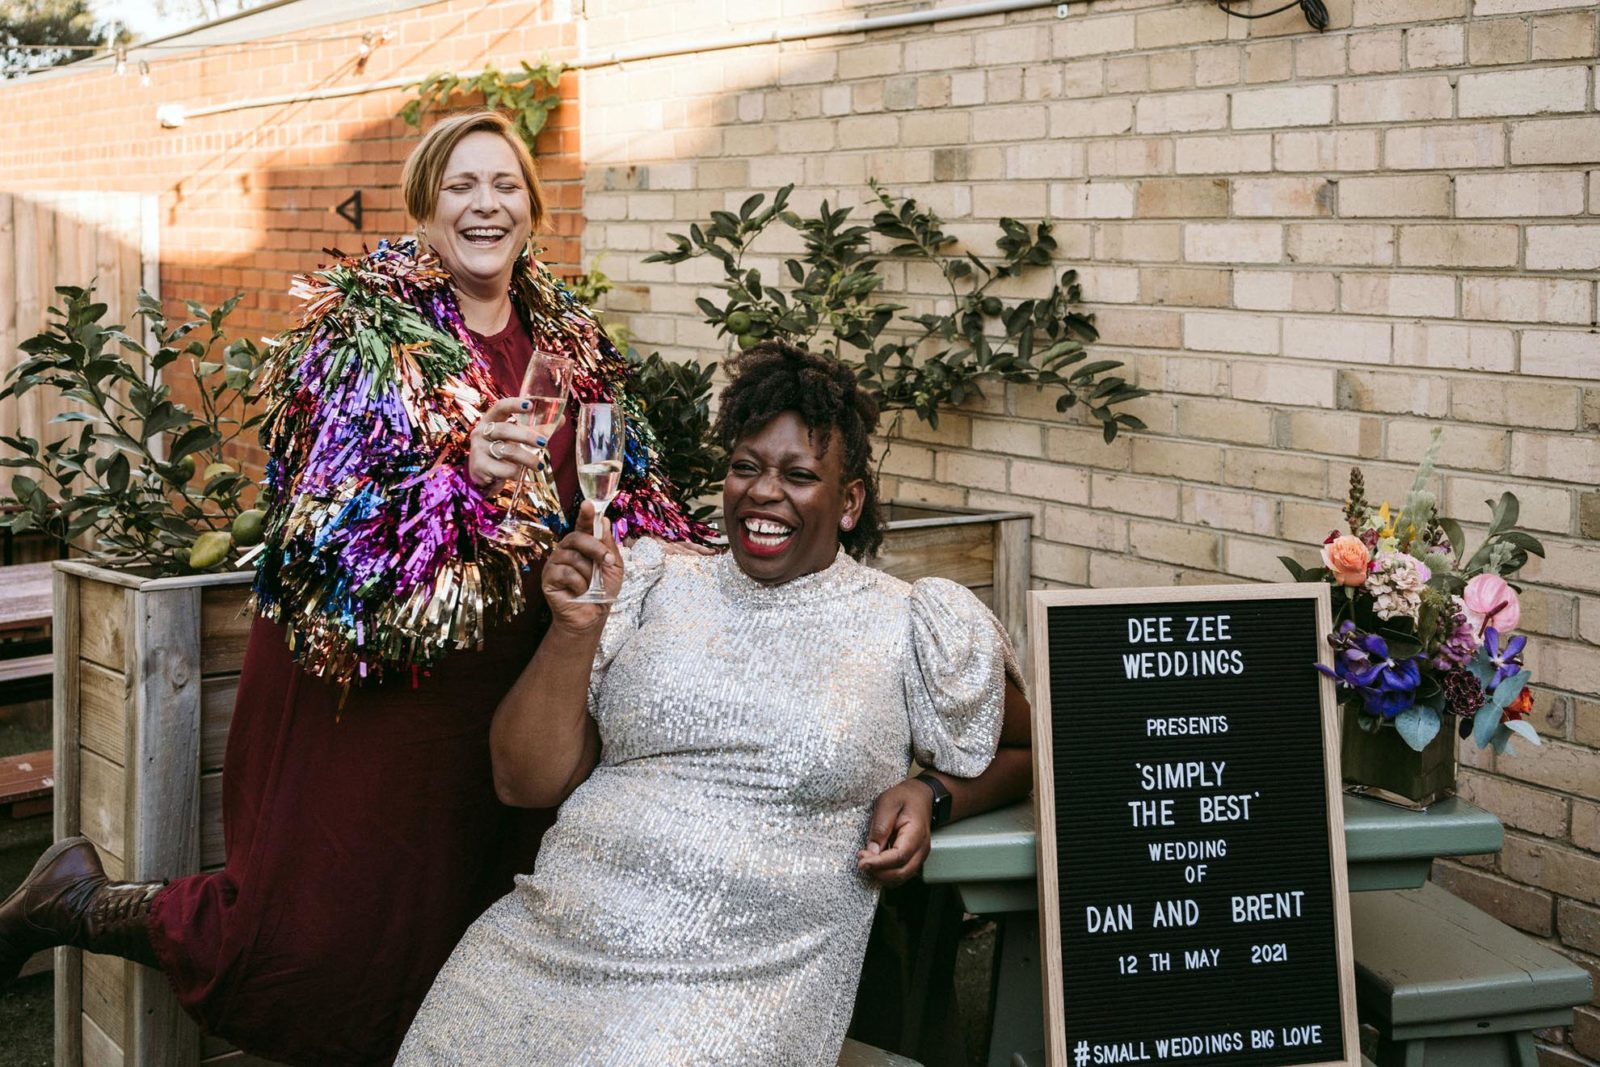 DeeZee Weddings lesbian gay same-sex two grooms two brides wedding elopement celebrant melbourne victoria dancing with her 5